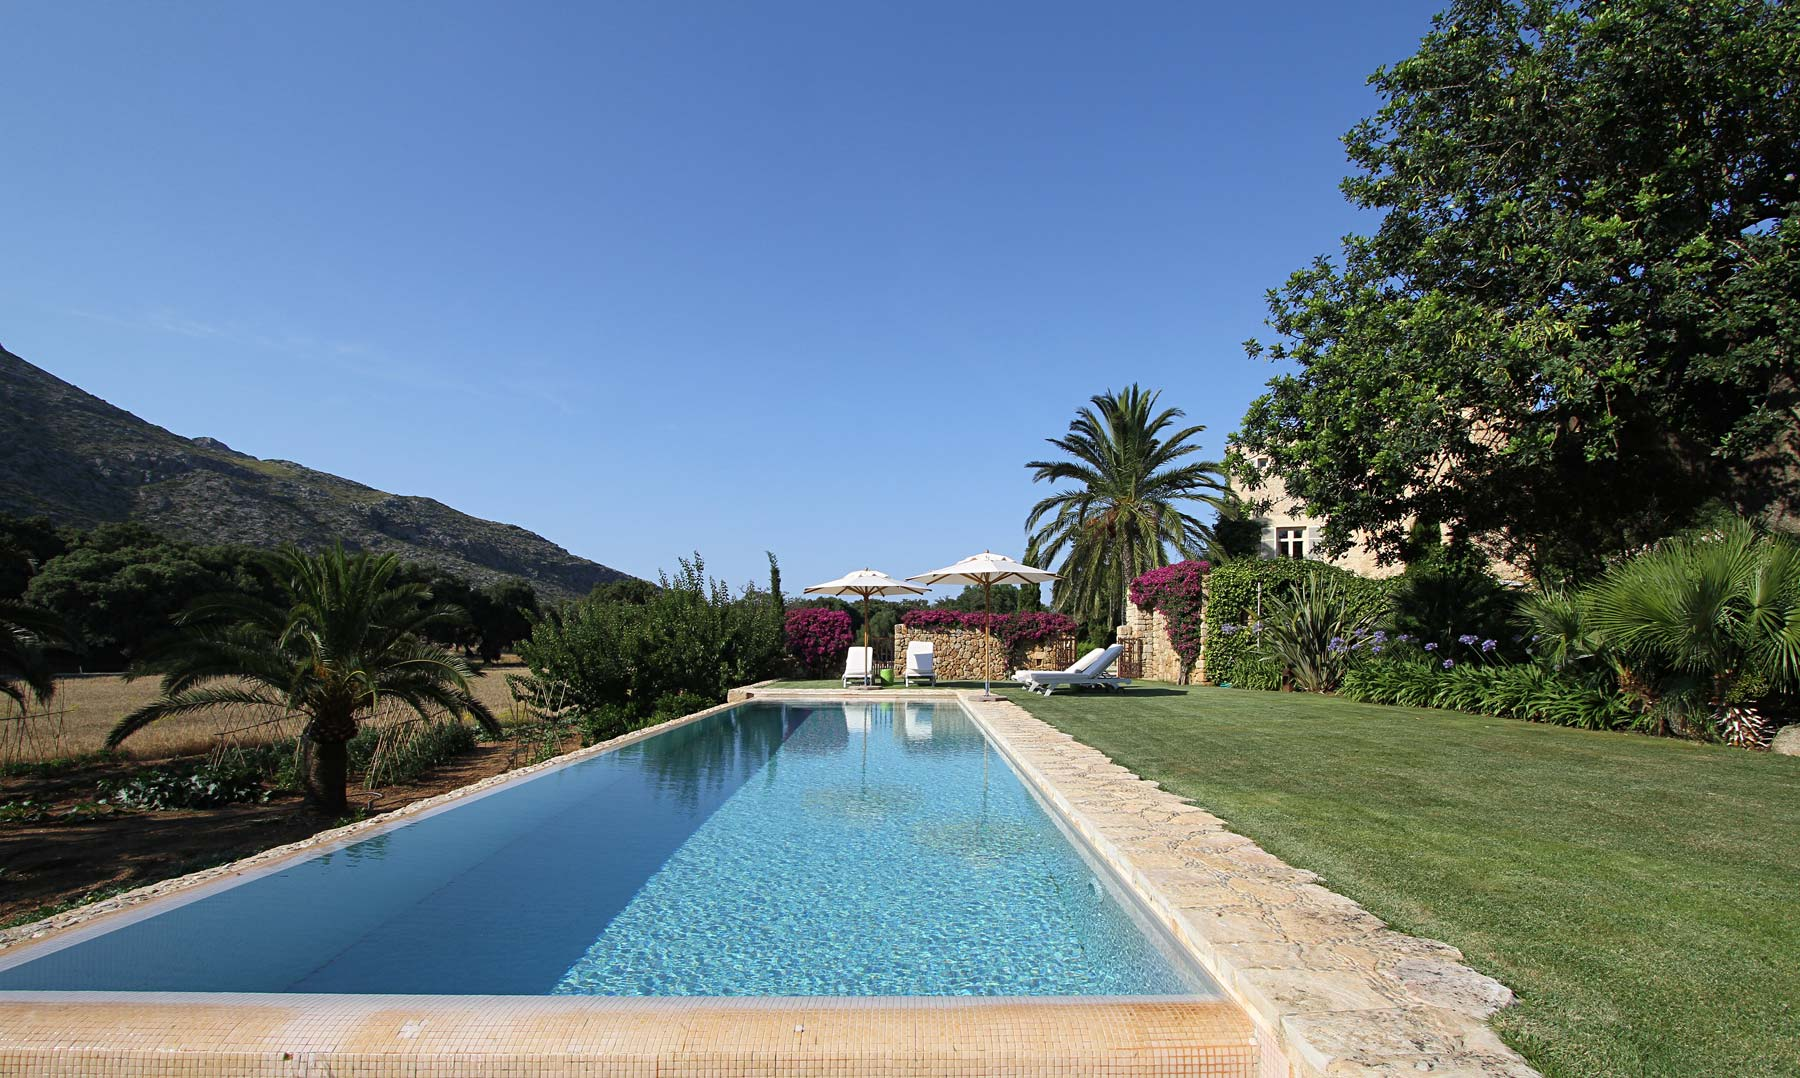 Pool, at Mallorca country house